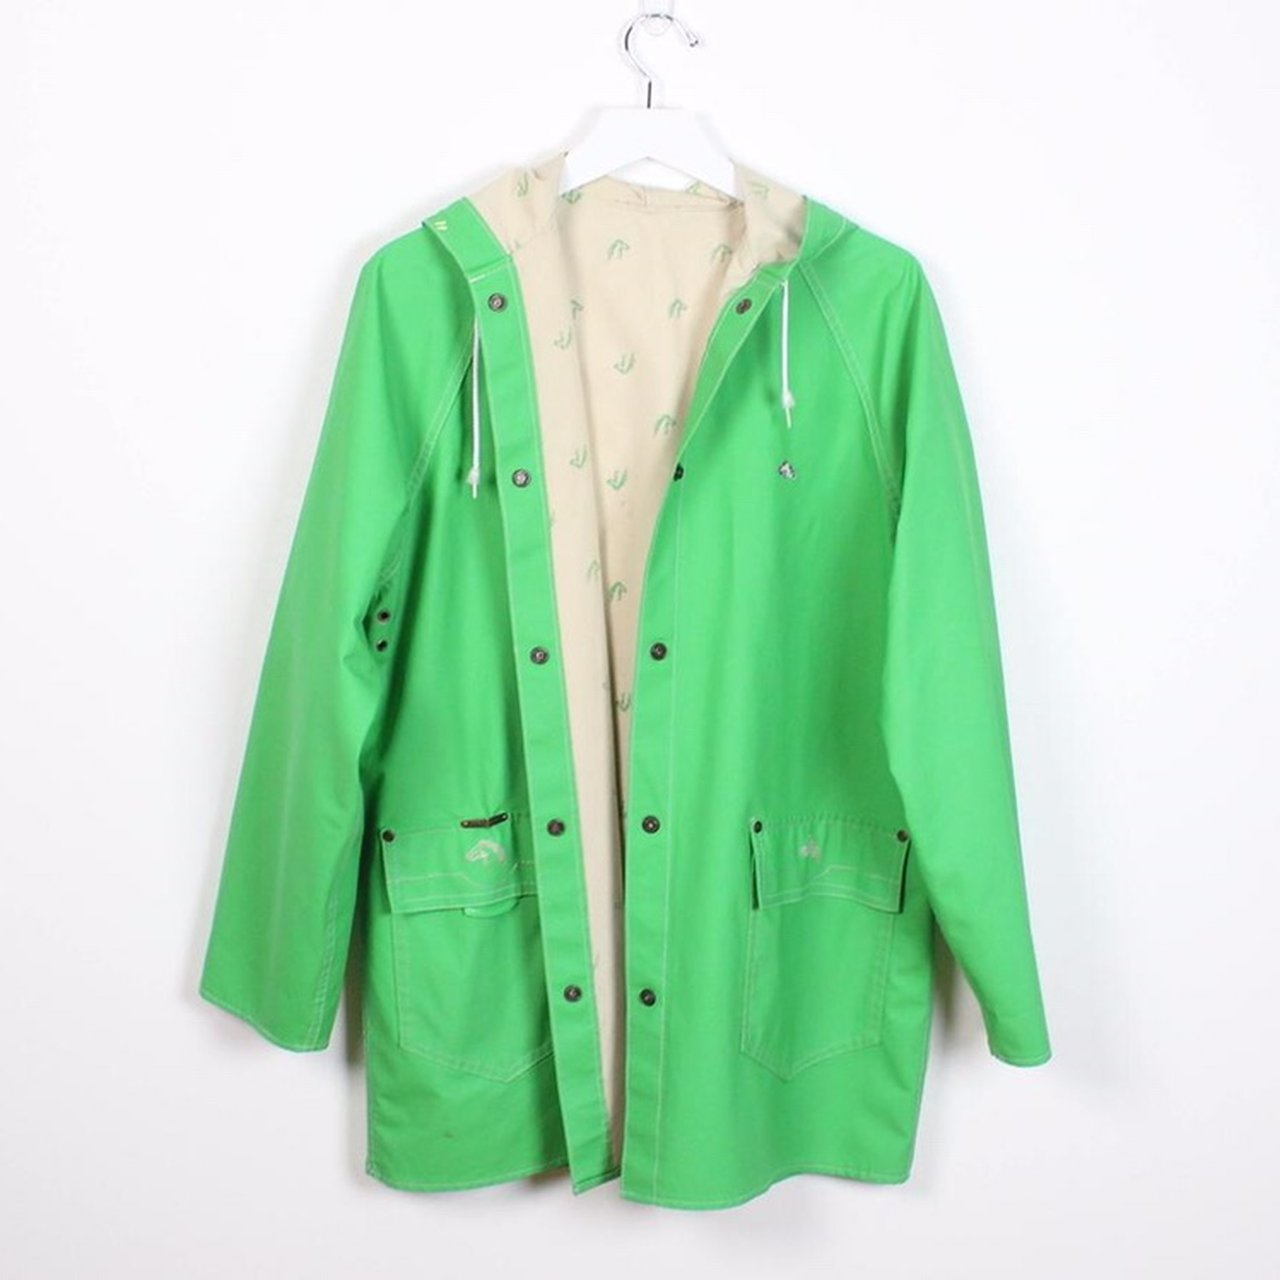 a7f530d535 Vintage 80s raincoat. Kelly green with